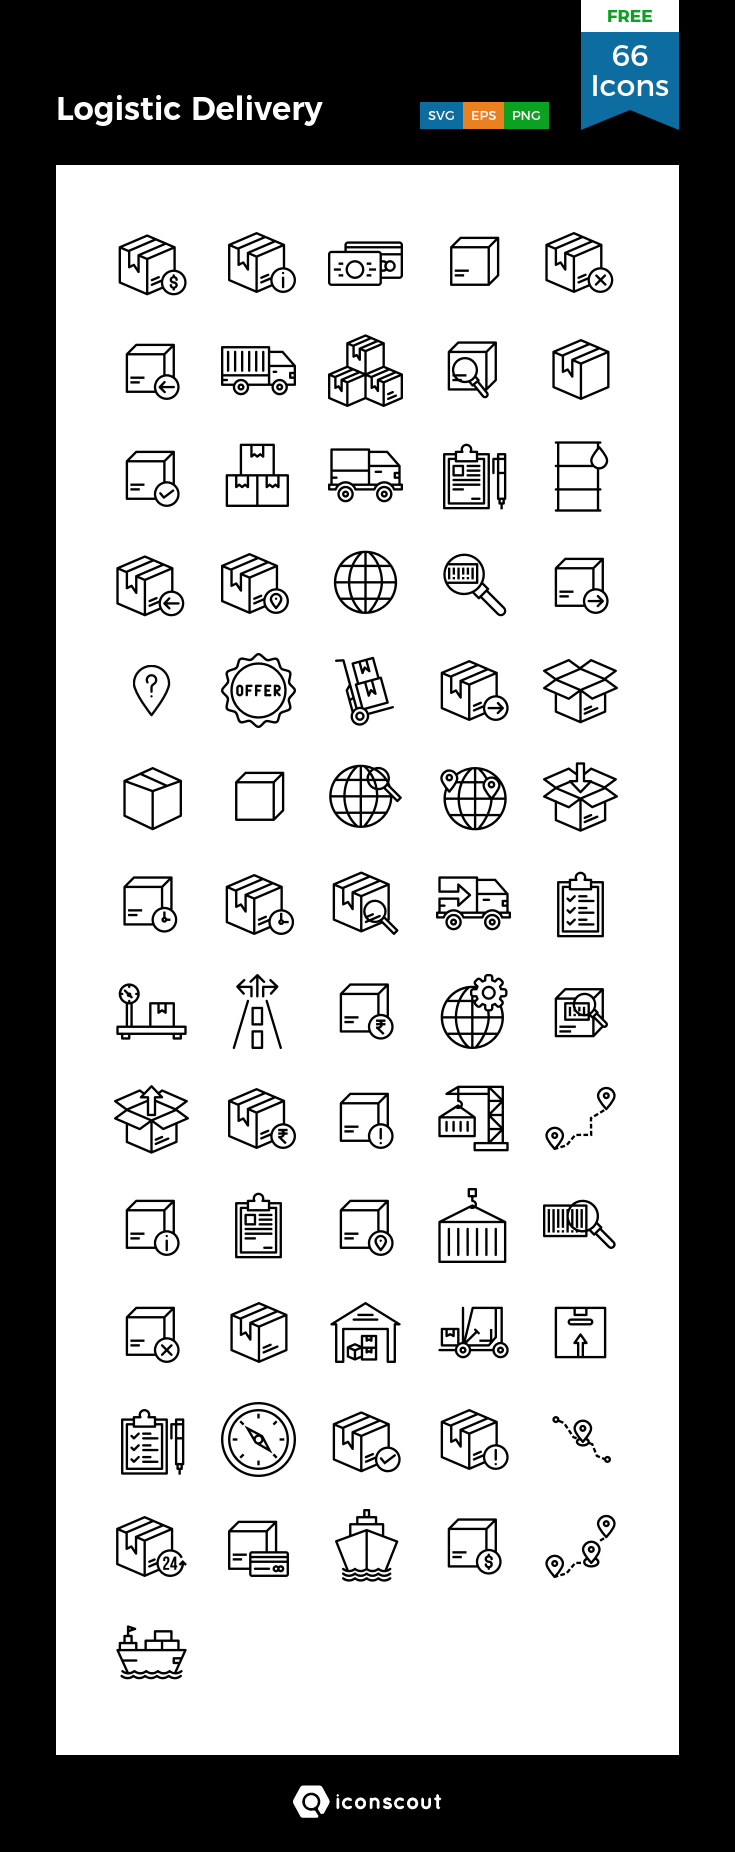 Download Logistic Delivery Icon Pack Available In Svg Png Eps Ai Icon Fonts Icon Icon Pack Free Icon Packs